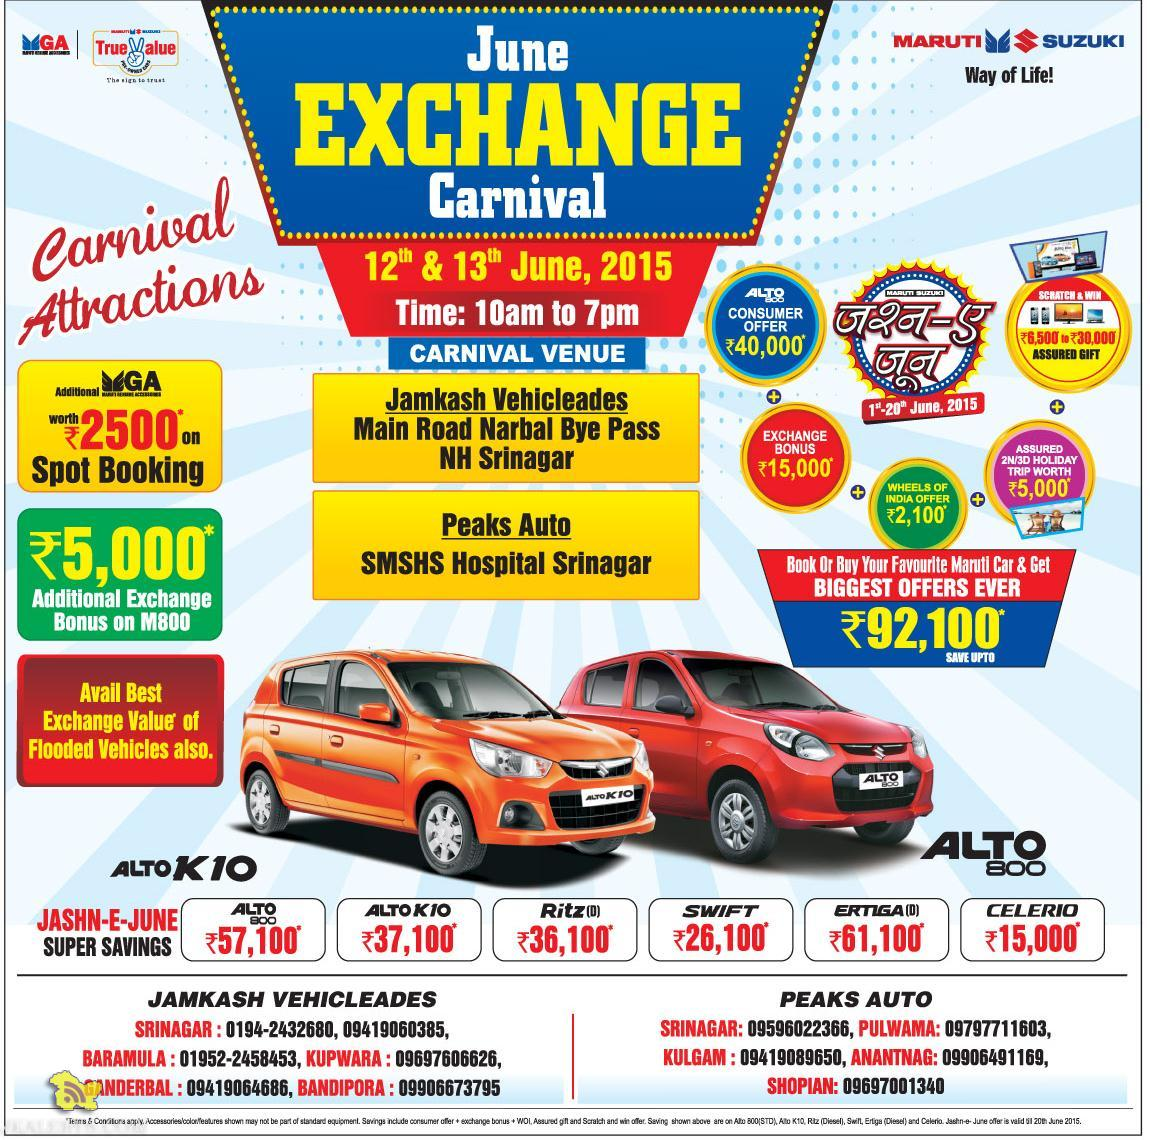 MARUTI SUZUKI JUNE EXCHANGE CARNIVAL 2015